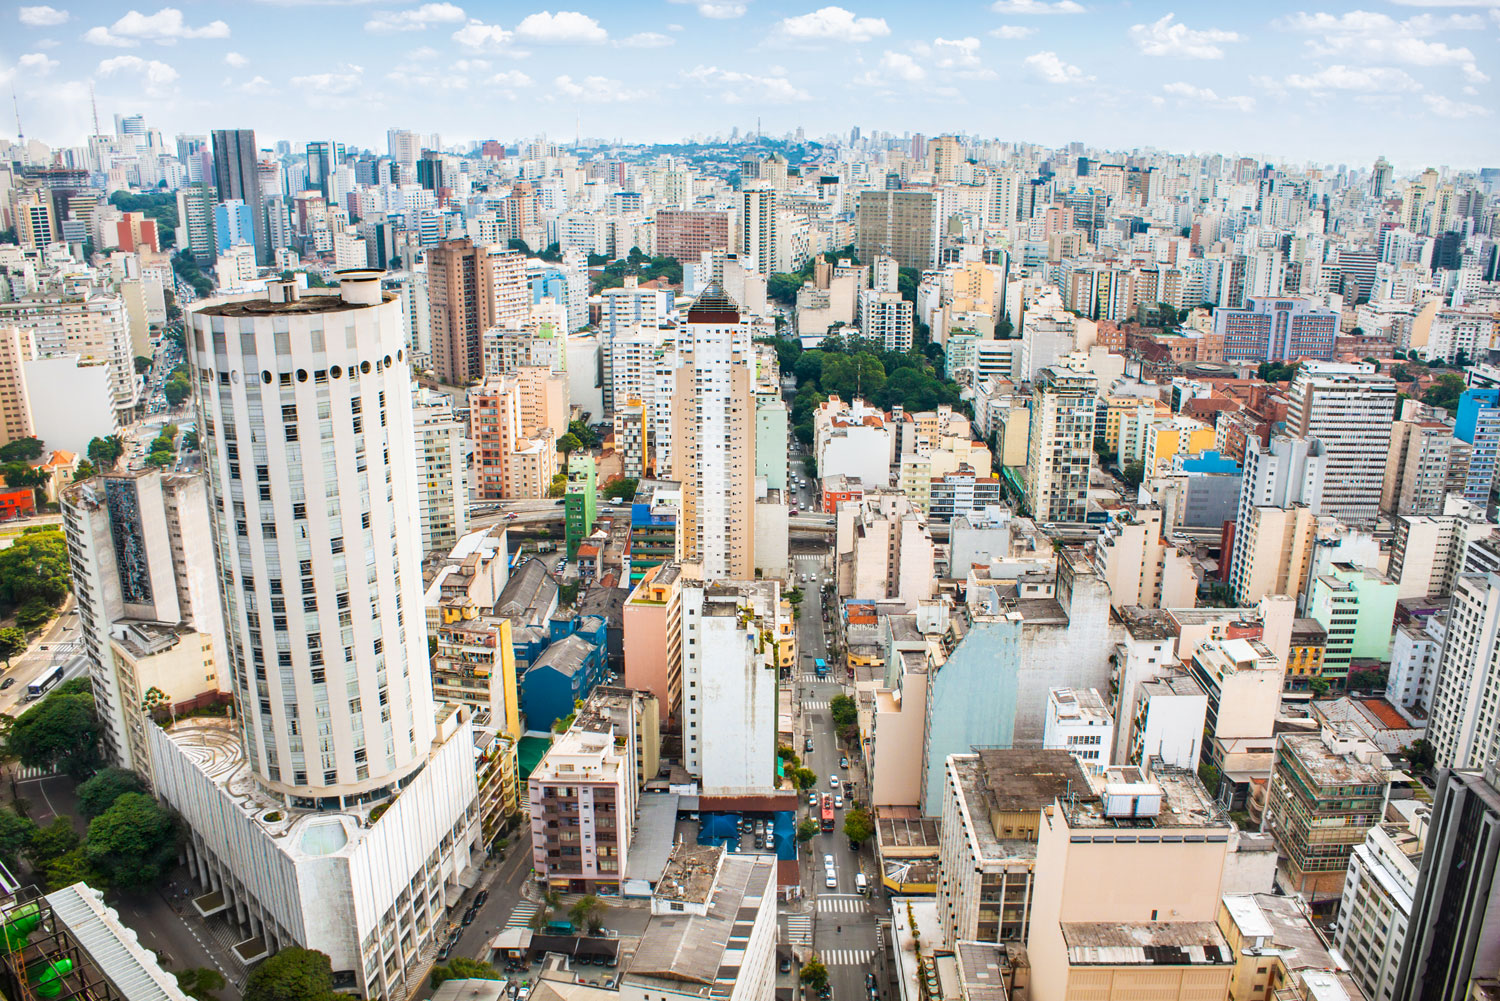 93 Sao Paulo  World's Most Incredible Cities. Online College With No Application Fee. Maximum Student Loan Amount Best Ac Company. Dentists In Wallingford Ct X Ray Tech Program. Chiropractor For Lower Back Pain. Simple Newsletter Templates Free. Fsu Online Computer Science Sage Act Hosted. Who Wrote The Rosetta Stone Mazda Mpv Forum. Internet Service Providers In Baton Rouge